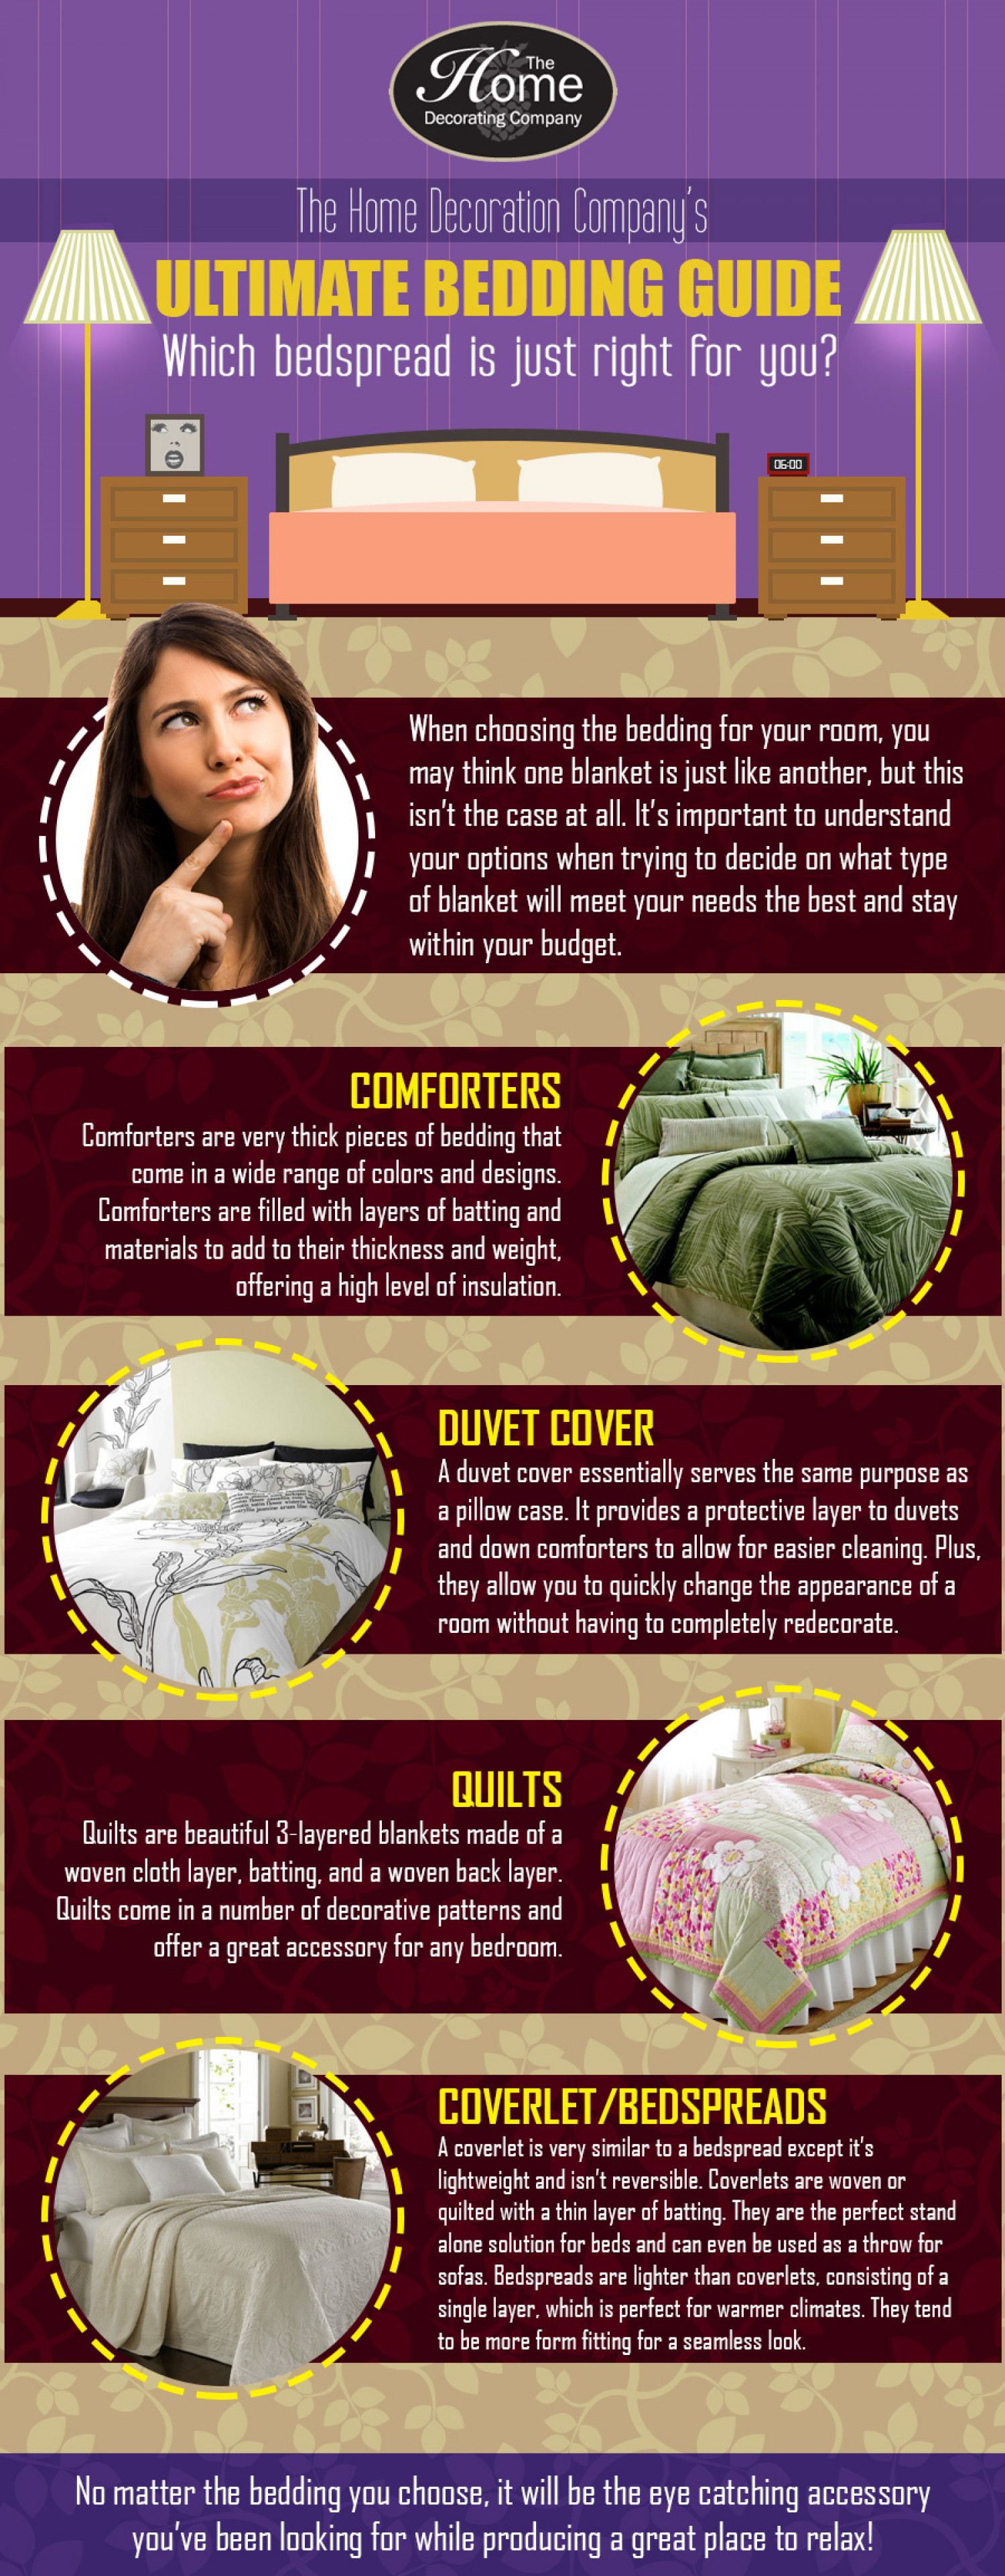 Ultimate Bedding Guide: Which Bedspread is just right for you? Infographic